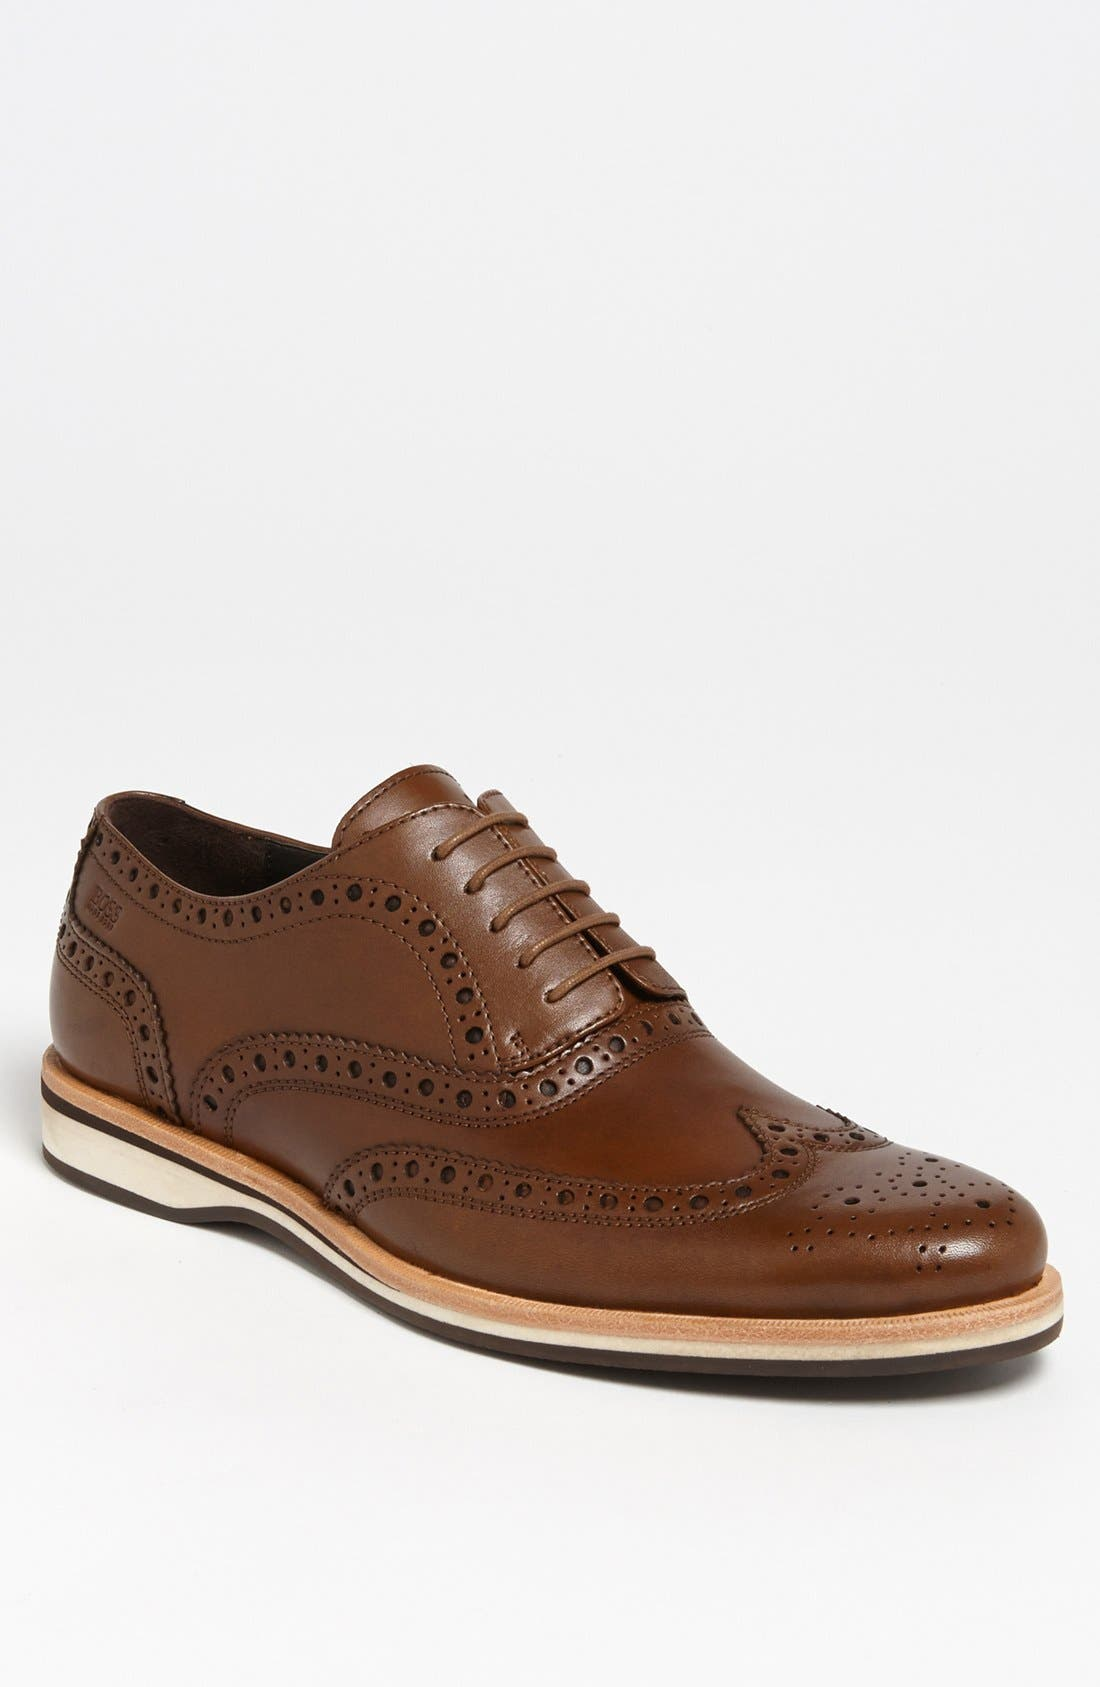 Main Image - BOSS HUGO BOSS 'Newero' Wingtip